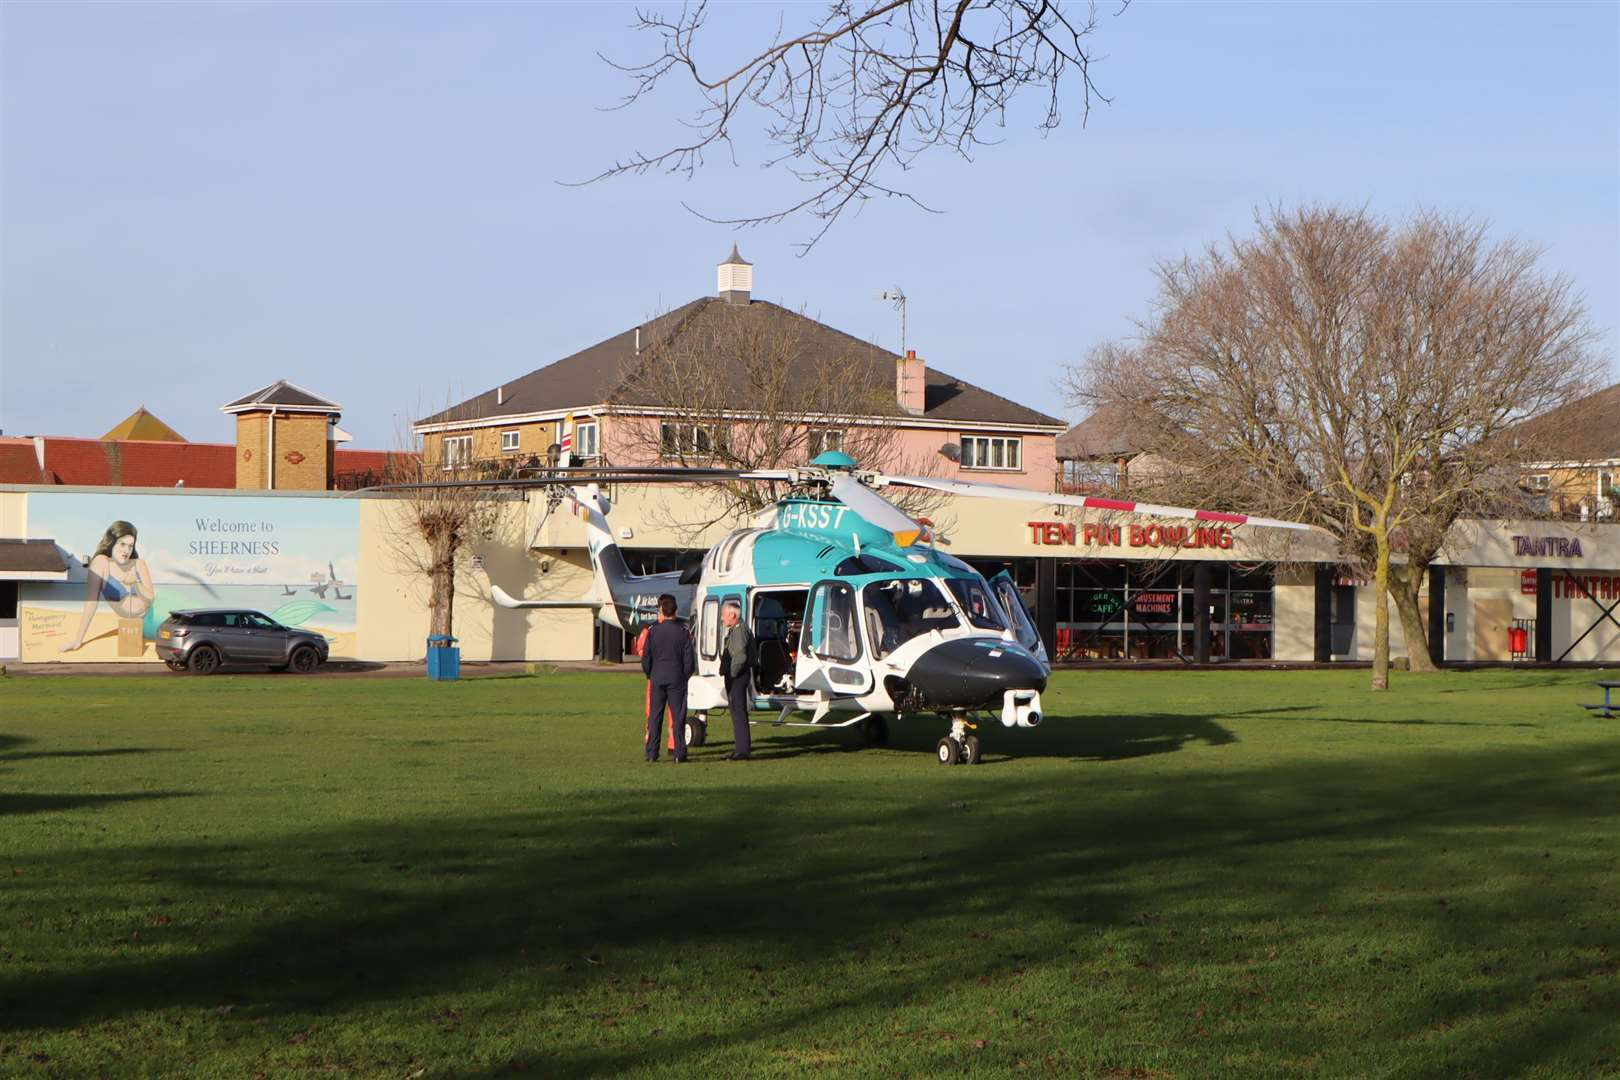 Air ambulance at Beachfields, Sheerness (24593721)